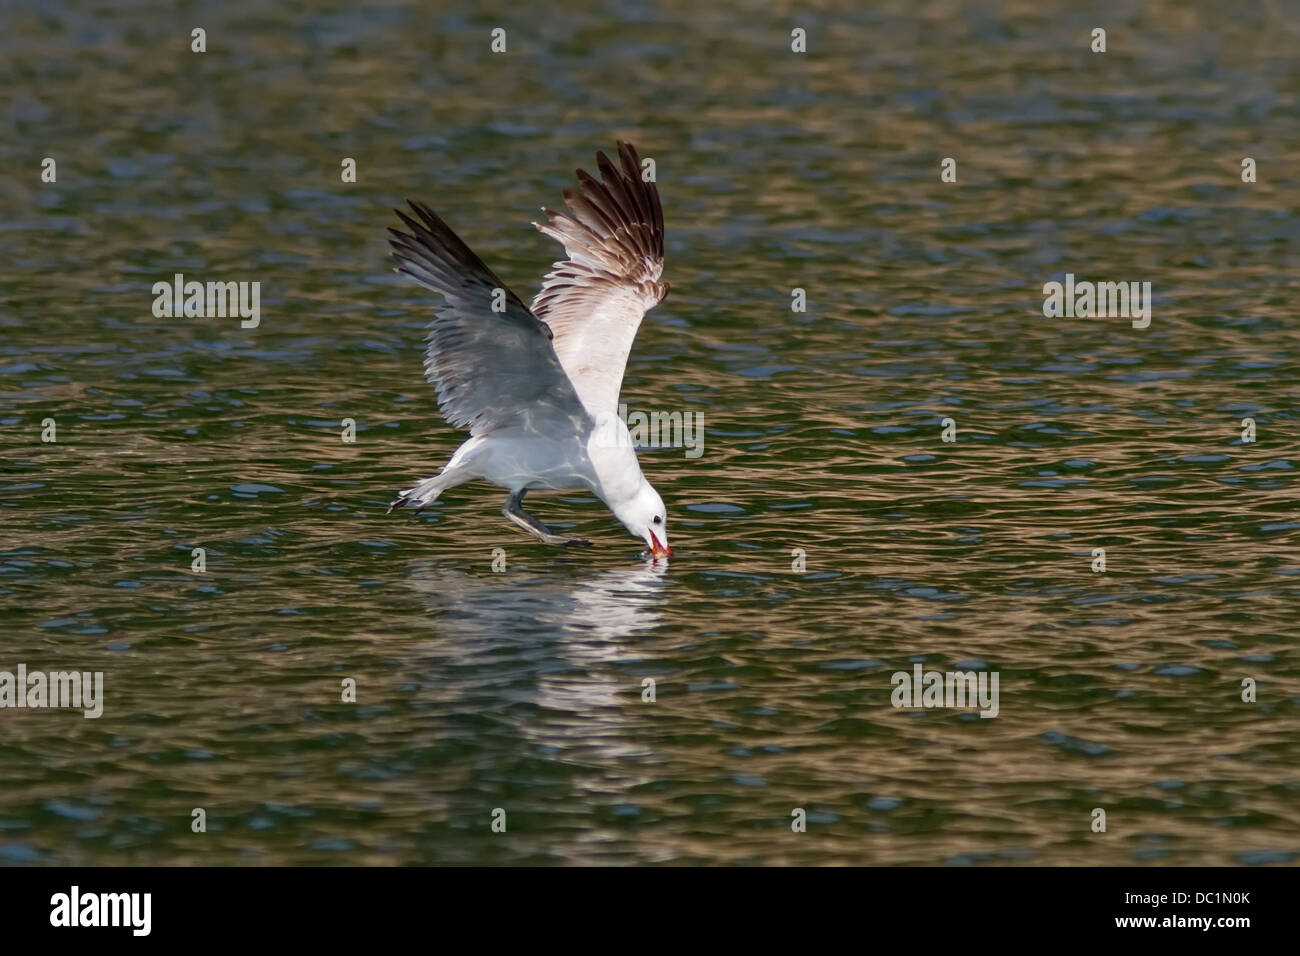 An Audouin's Gull (Larus audouinii) plunging its bill in the water looking for food - Stock Image